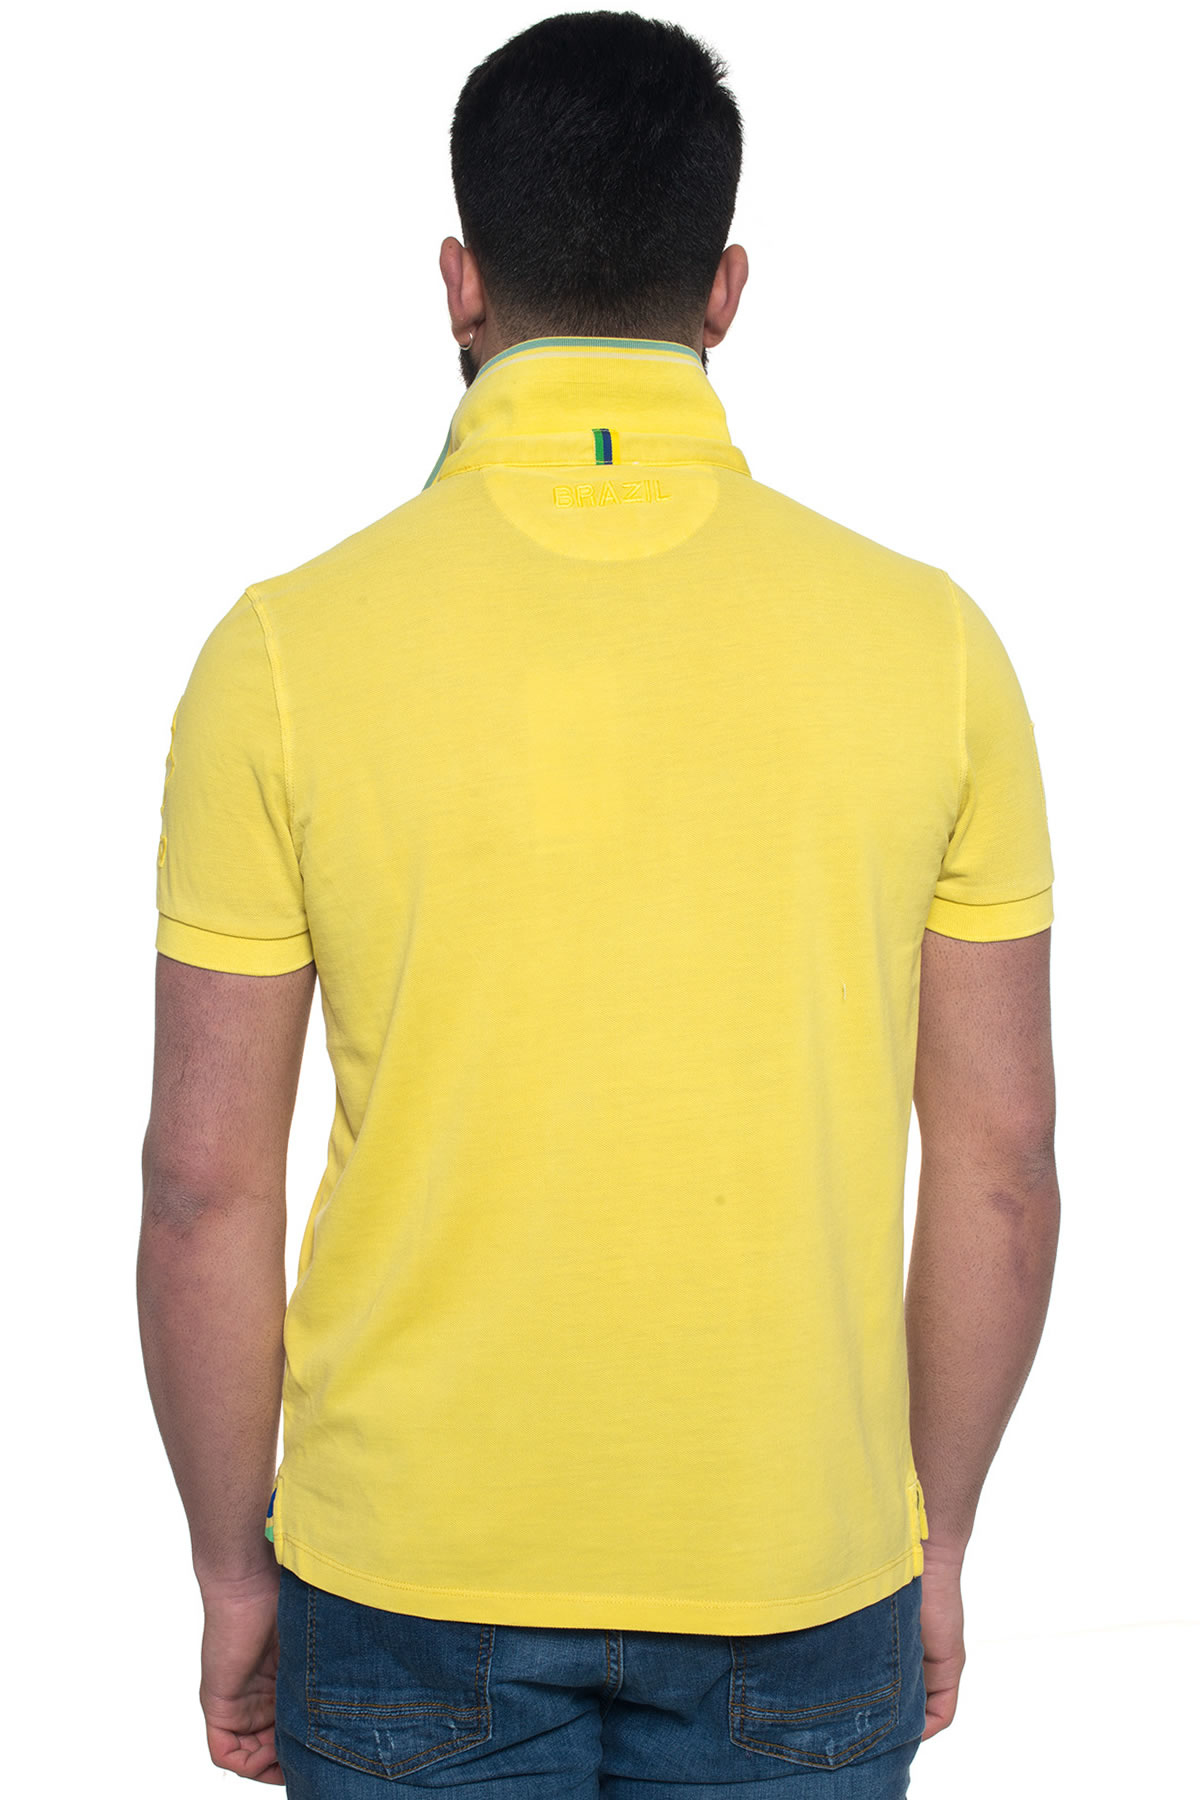 u s polo assn brazil polo shirt in yellow for men lyst. Black Bedroom Furniture Sets. Home Design Ideas